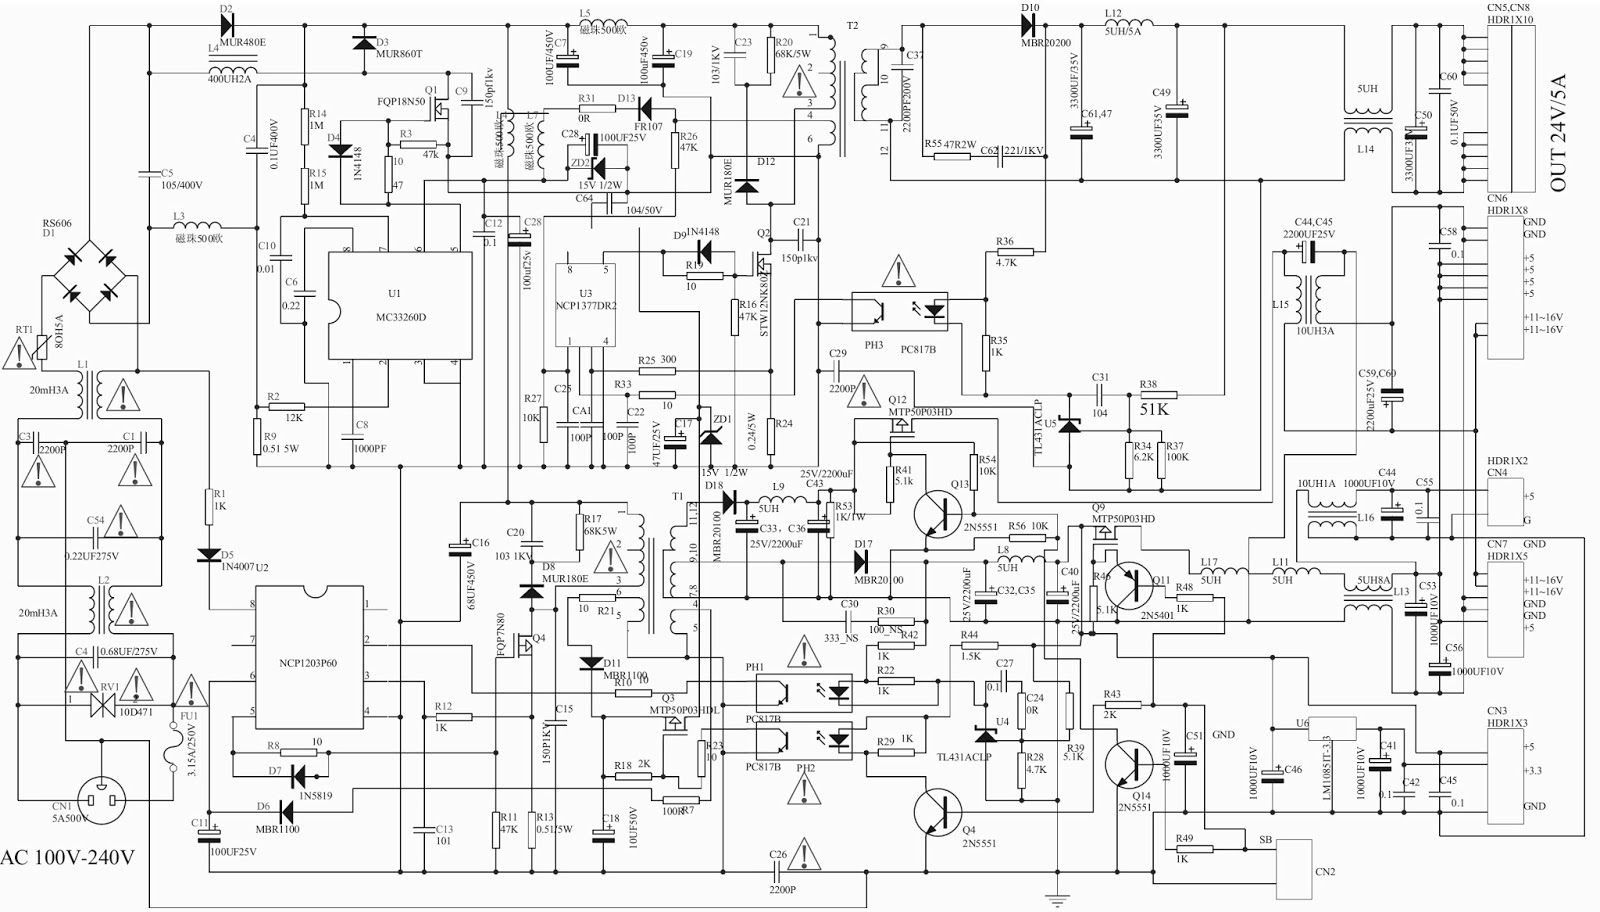 akai lta 27a901 lcd tv main power supply smps circuit rh electronicshelponline blogspot com samsung lcd tv circuit diagram sony lcd tv circuit diagram pdf